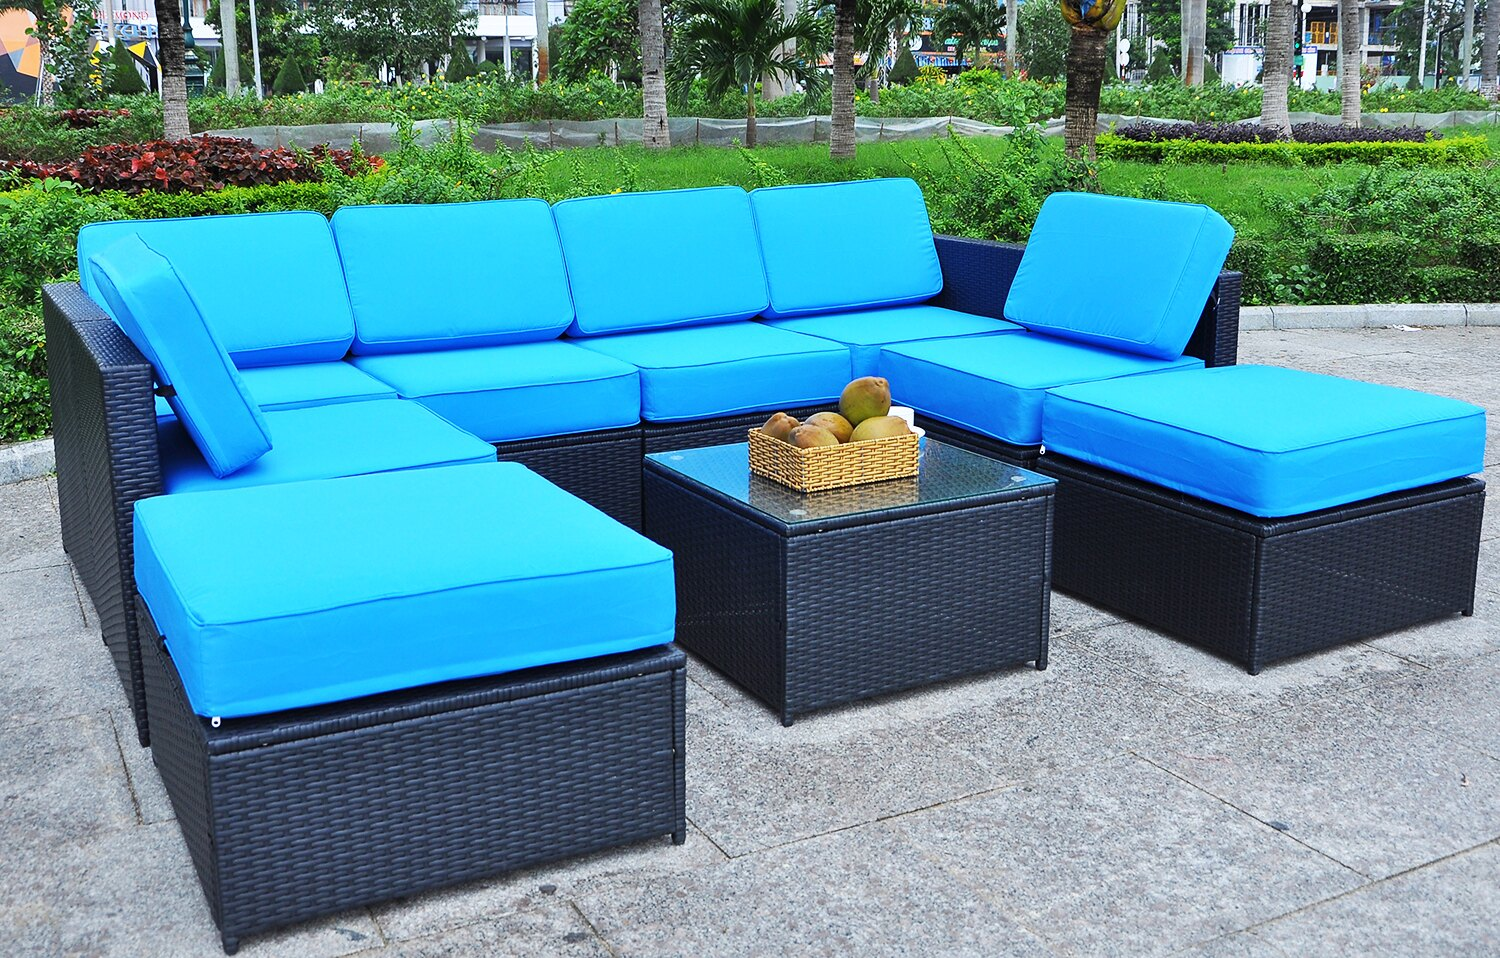 mcombo: Mcombo Black Wicker Patio Sofa Steel Outdoor Patio Furniture ...